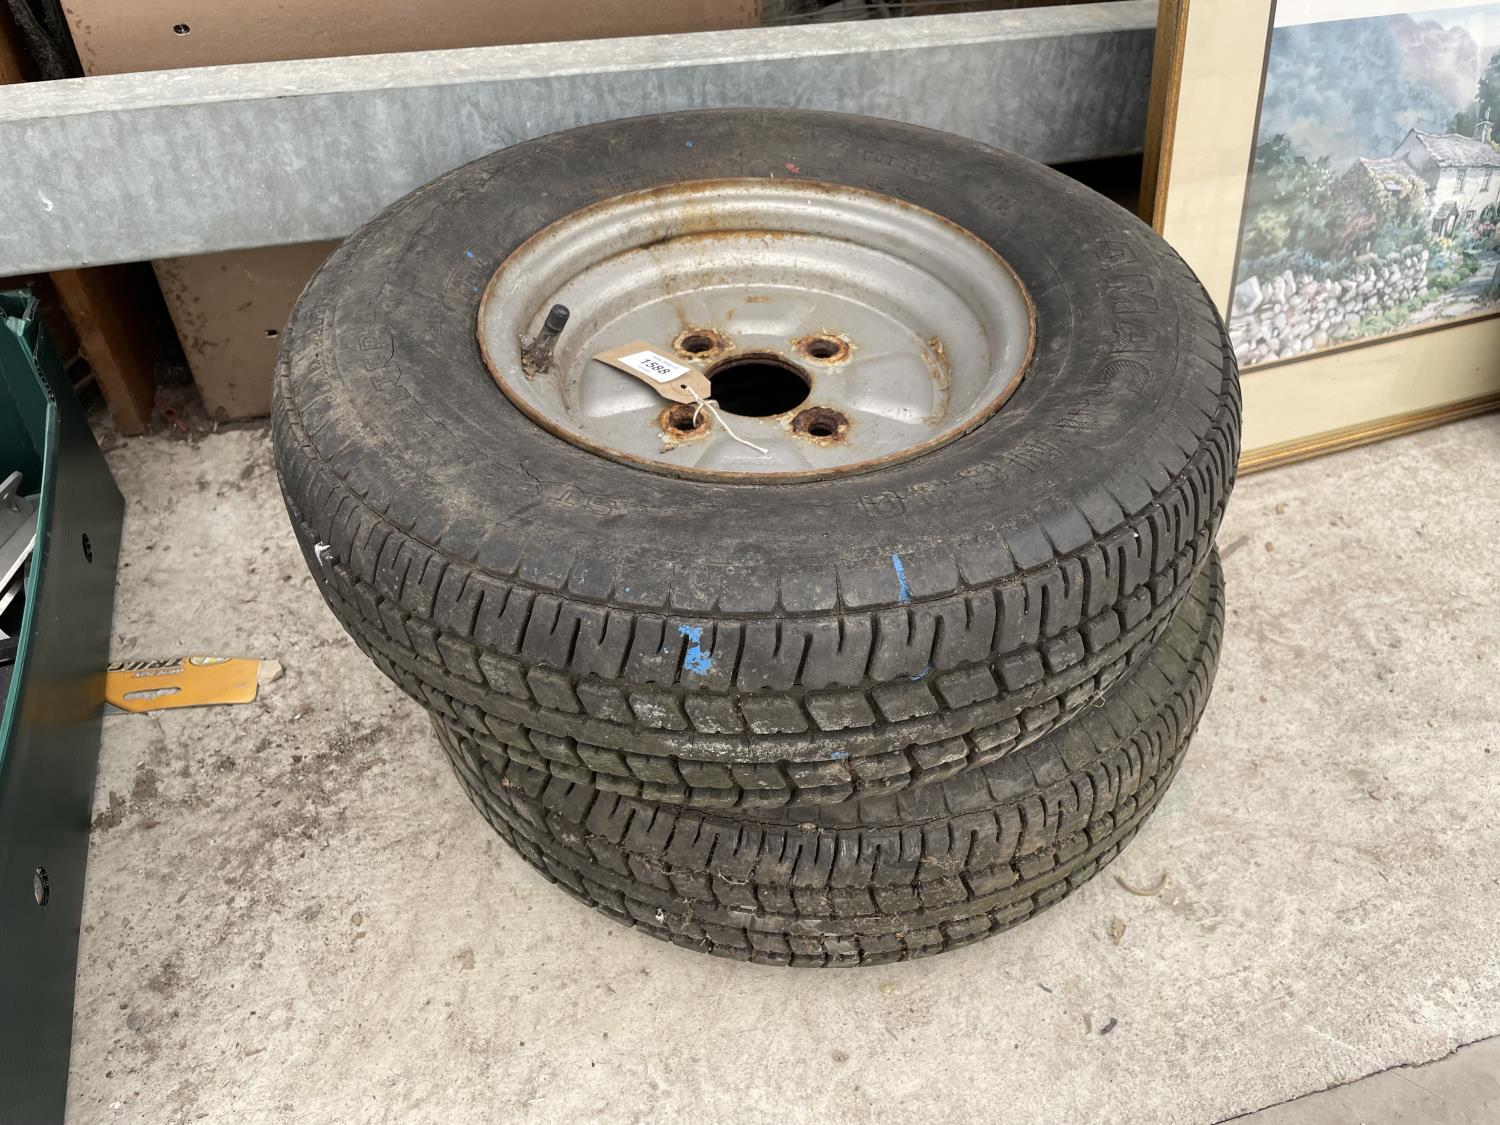 A PAIR OF FOUR STUDDED RIMS WITH TYRES - Image 2 of 4